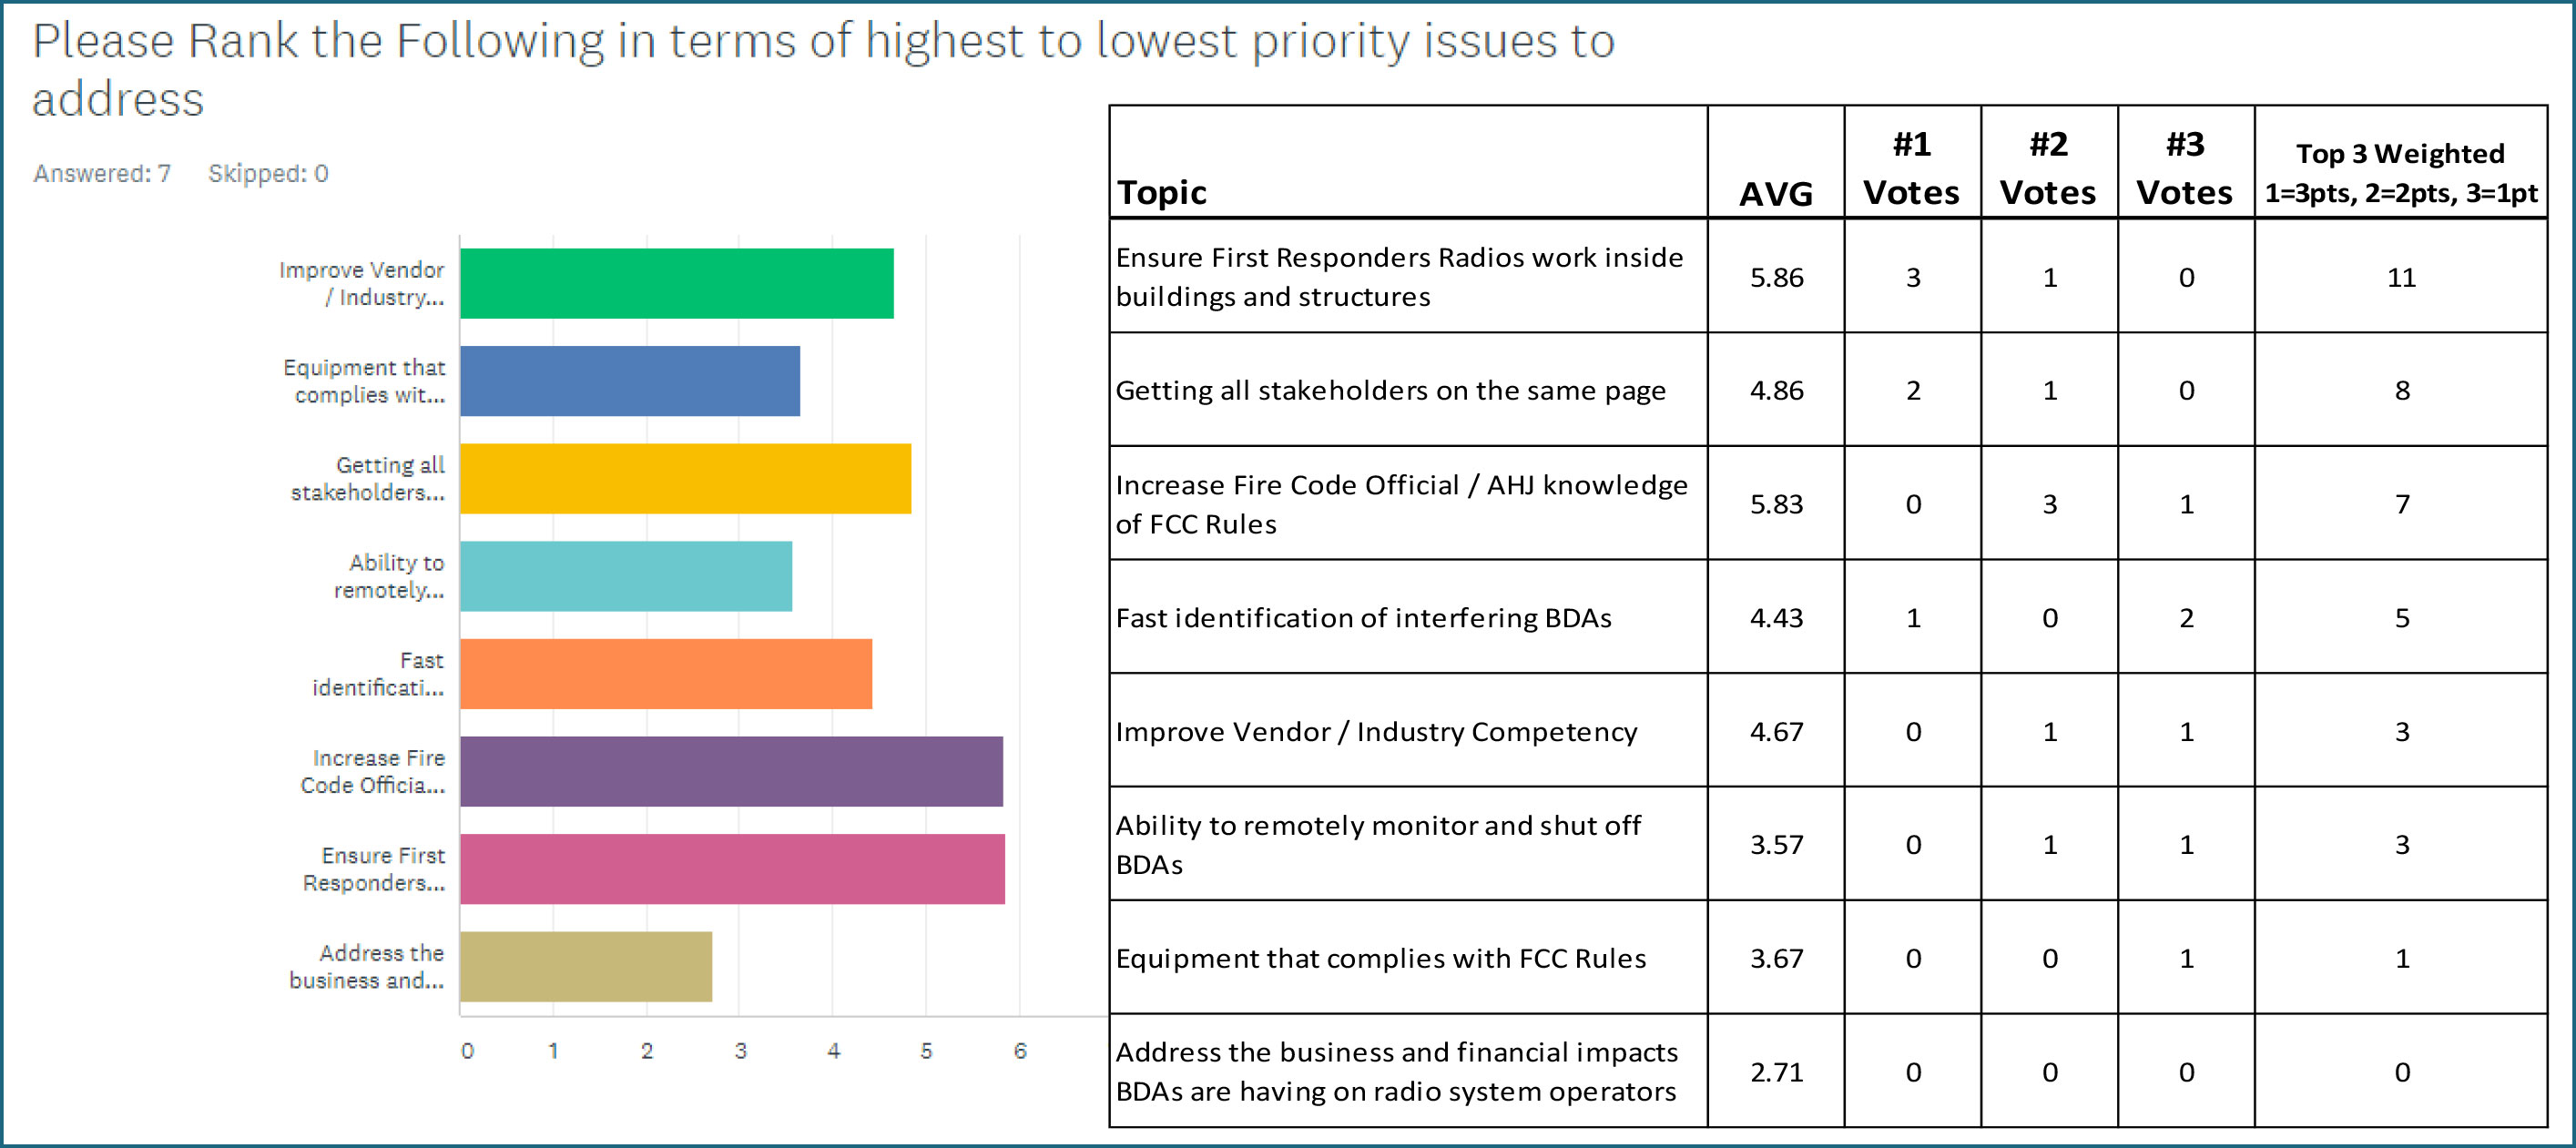 Graph Please rank the following in terms of highest to lowest priority issues to address